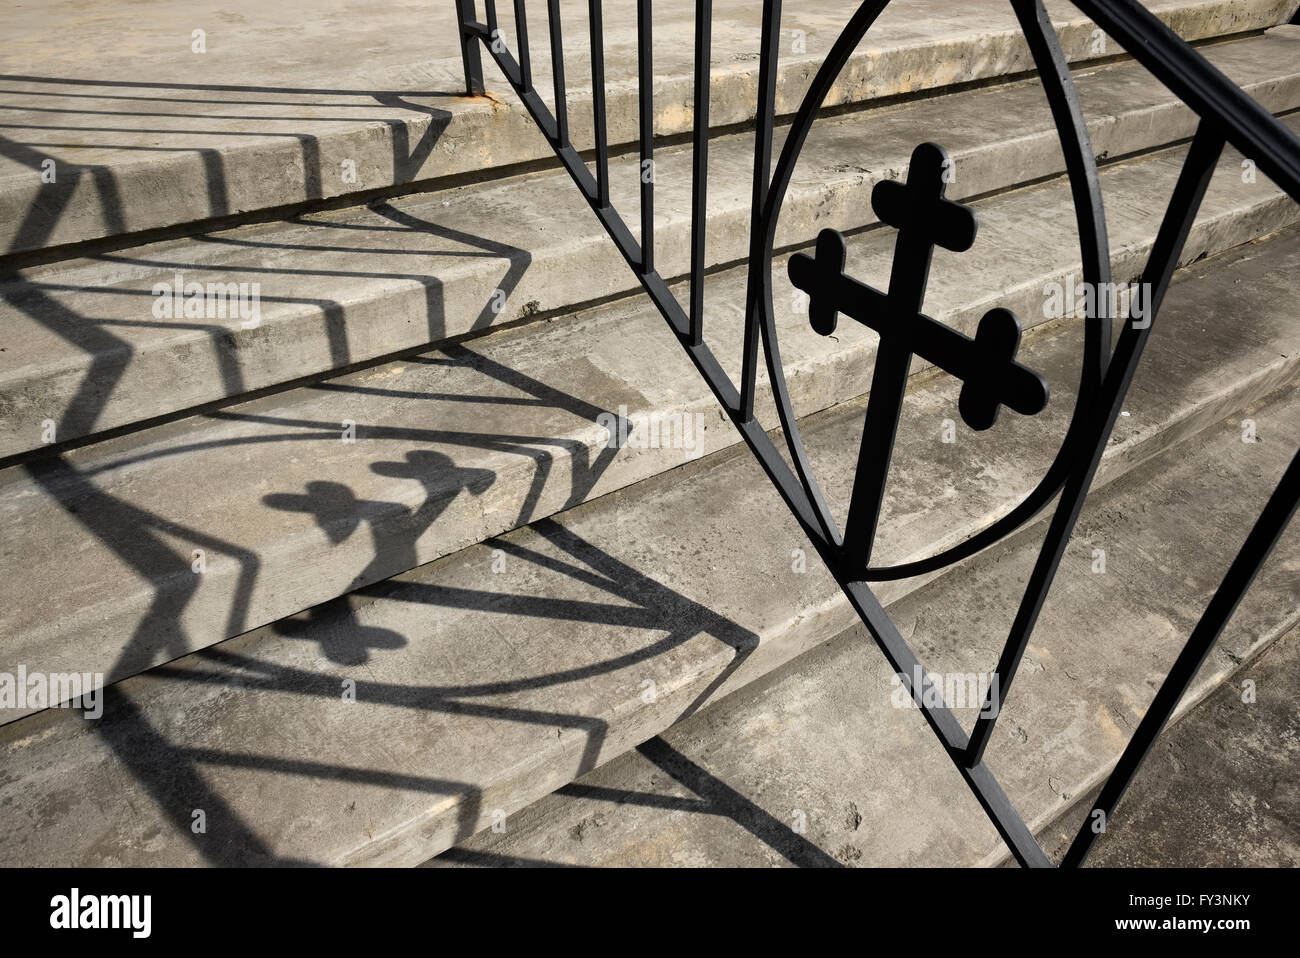 Metal cross in ironwork of handrail on steps of church - Stock Image